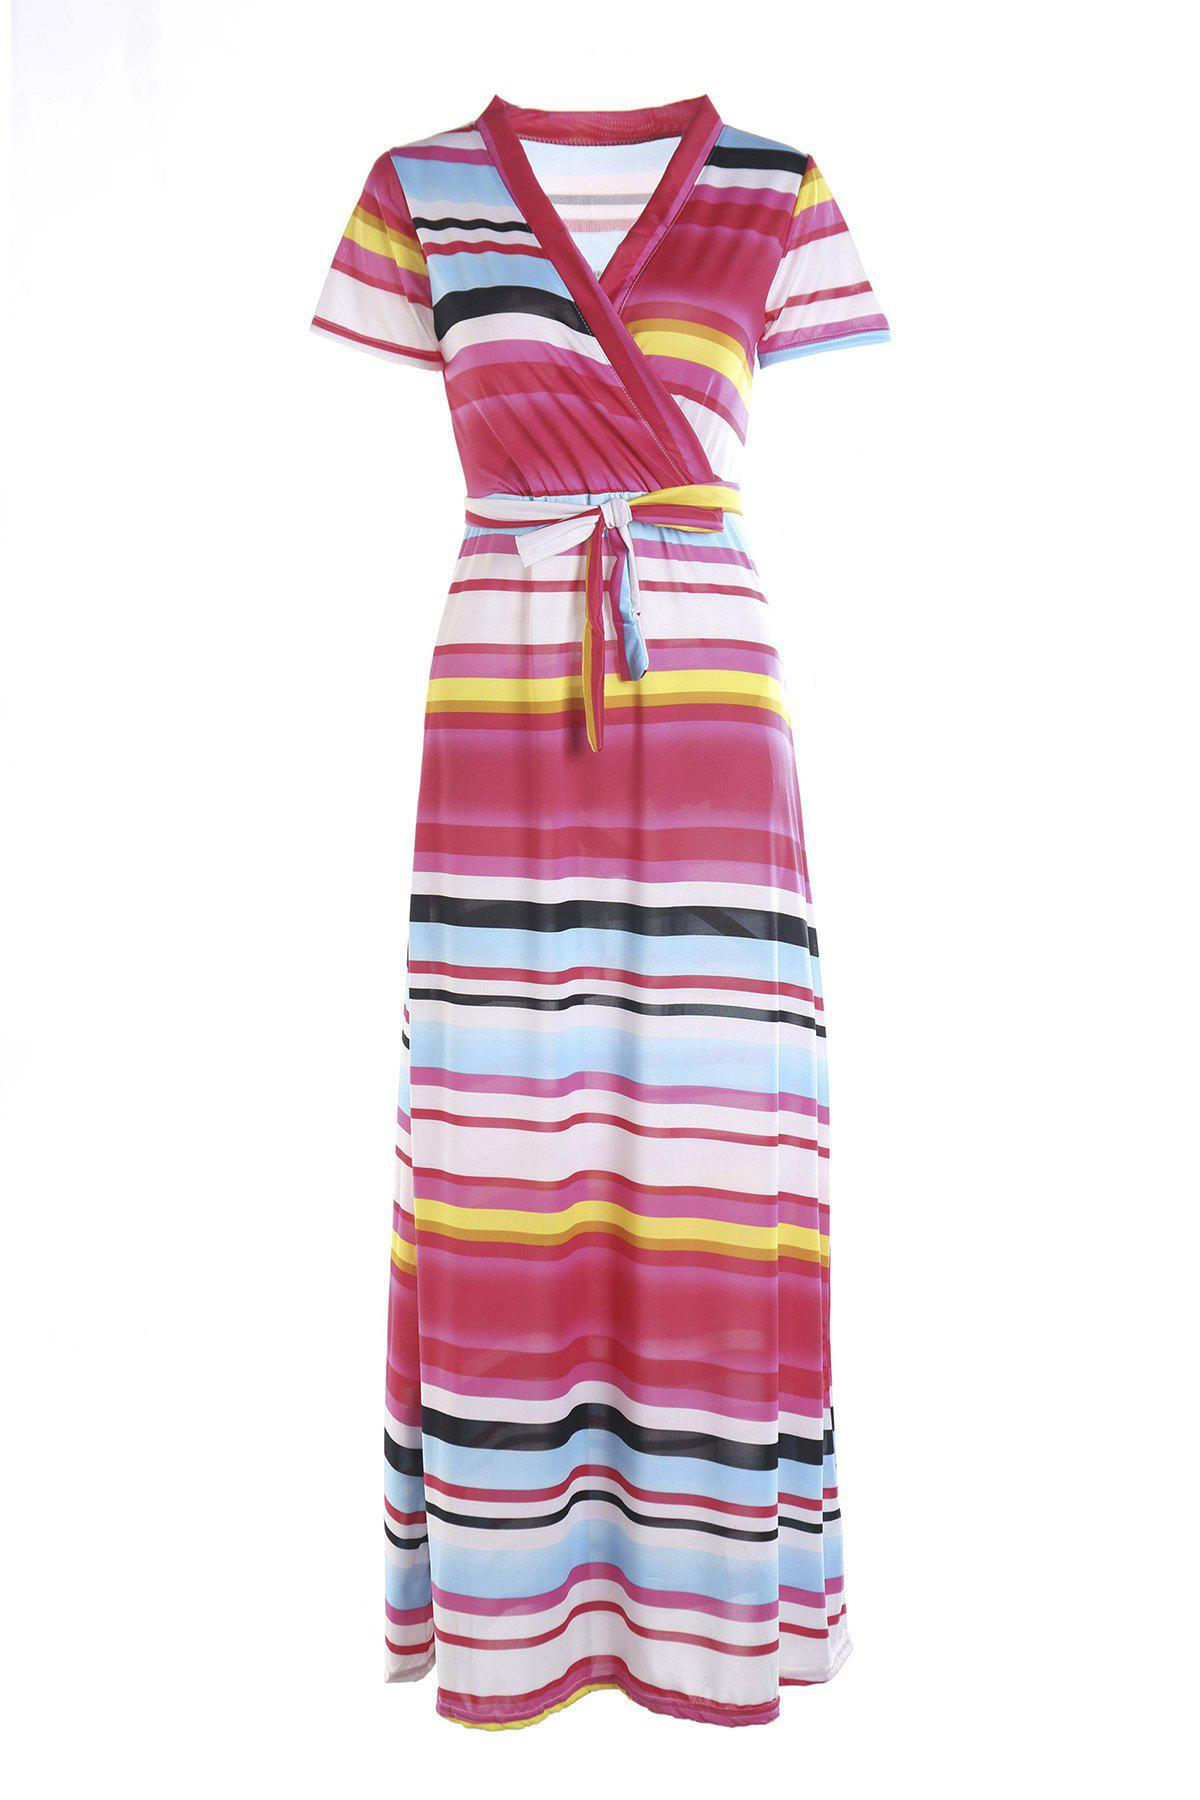 Alluring Short Sleeves Plunging Neck Striped Women's Maxi Dress - STRIPE XL